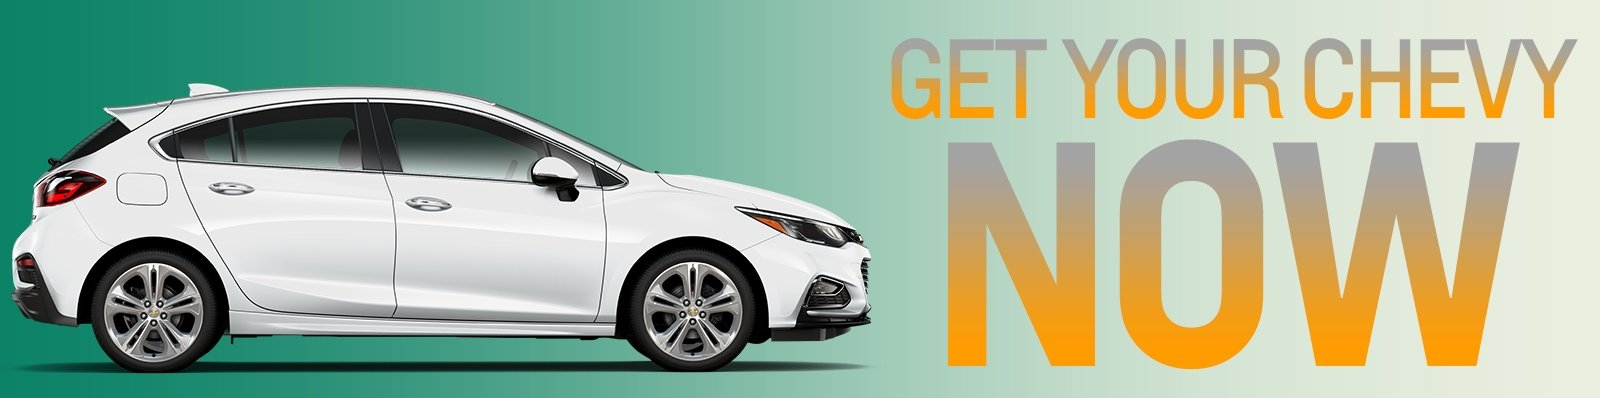 Get Your New Chevy Now